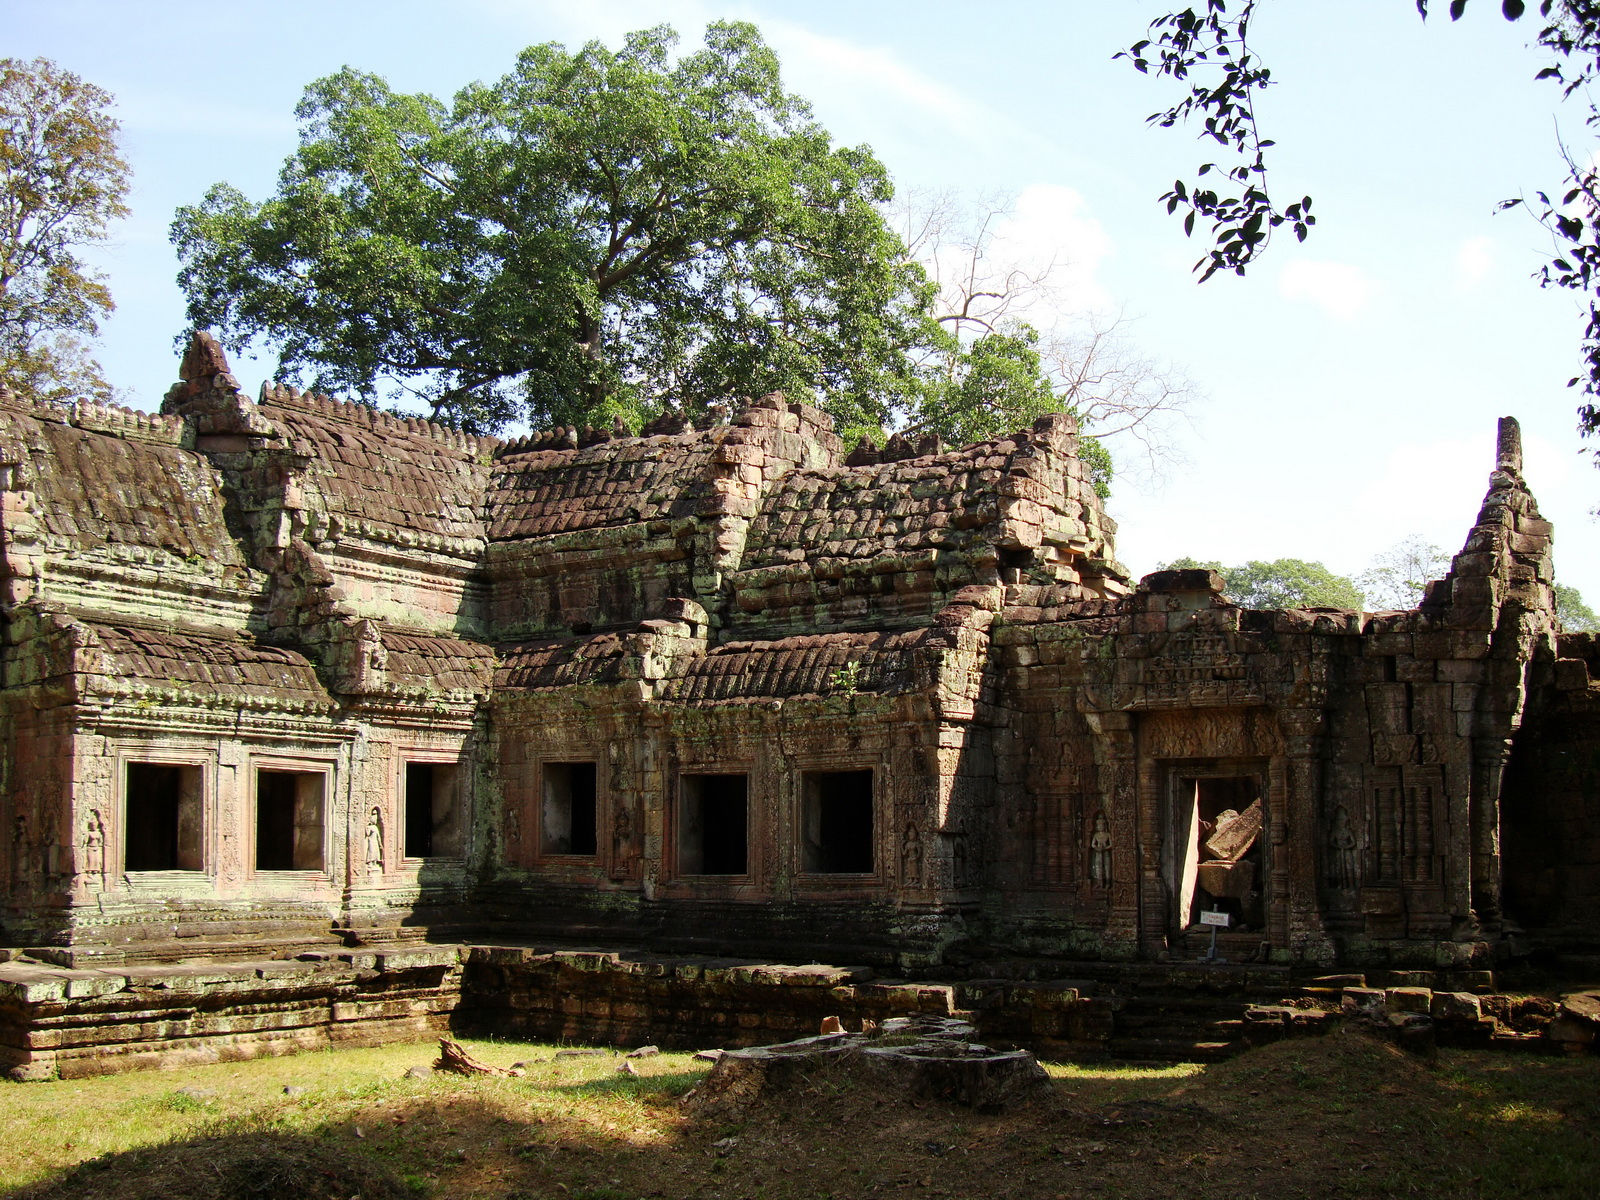 Preah Khan West entrance gopura to Vishnu temple Angkor Thom 05